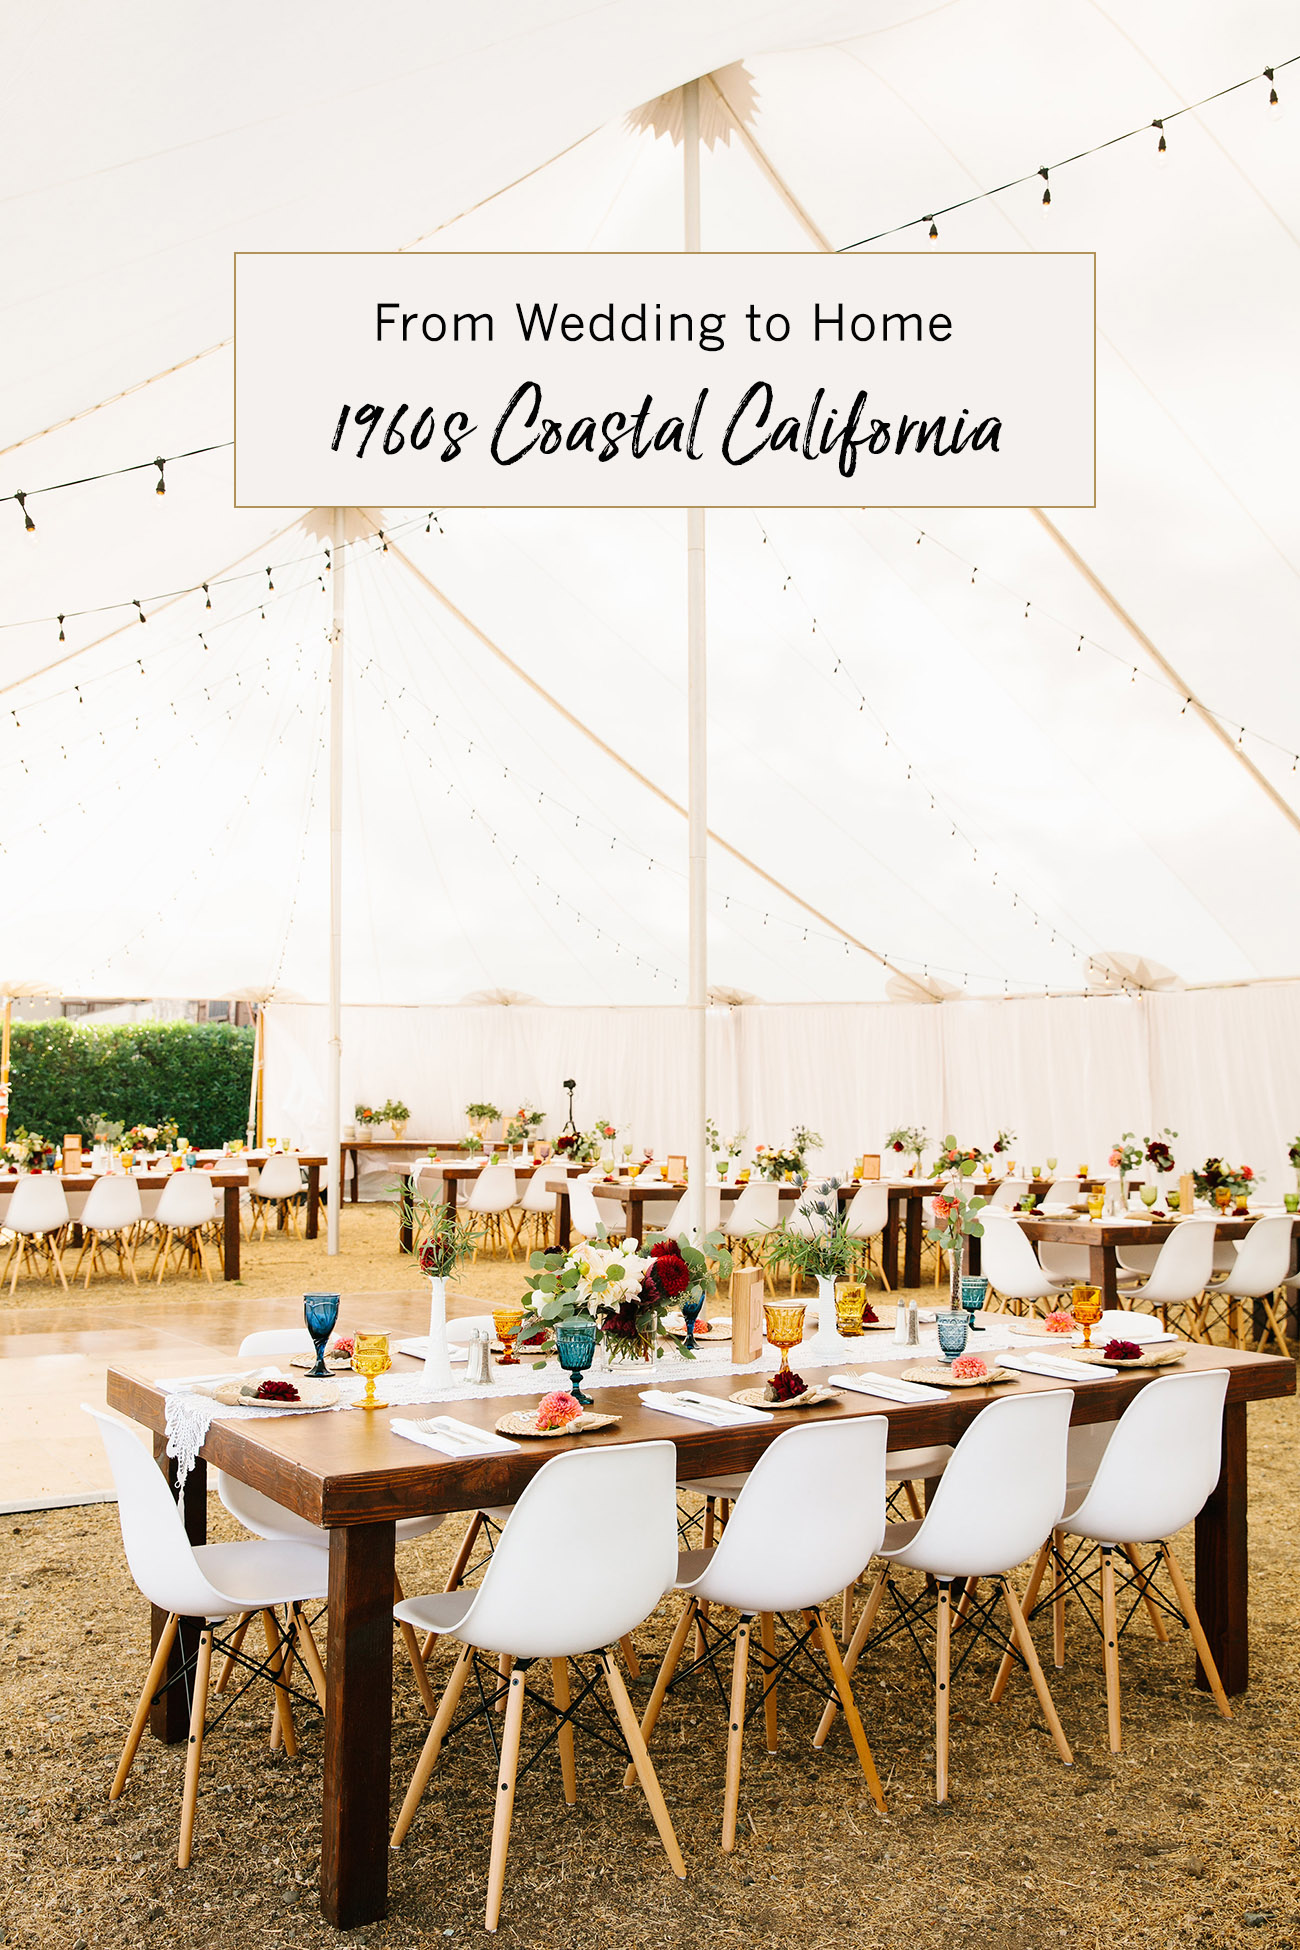 From Wedding to Home - 1960s Coastal Cali